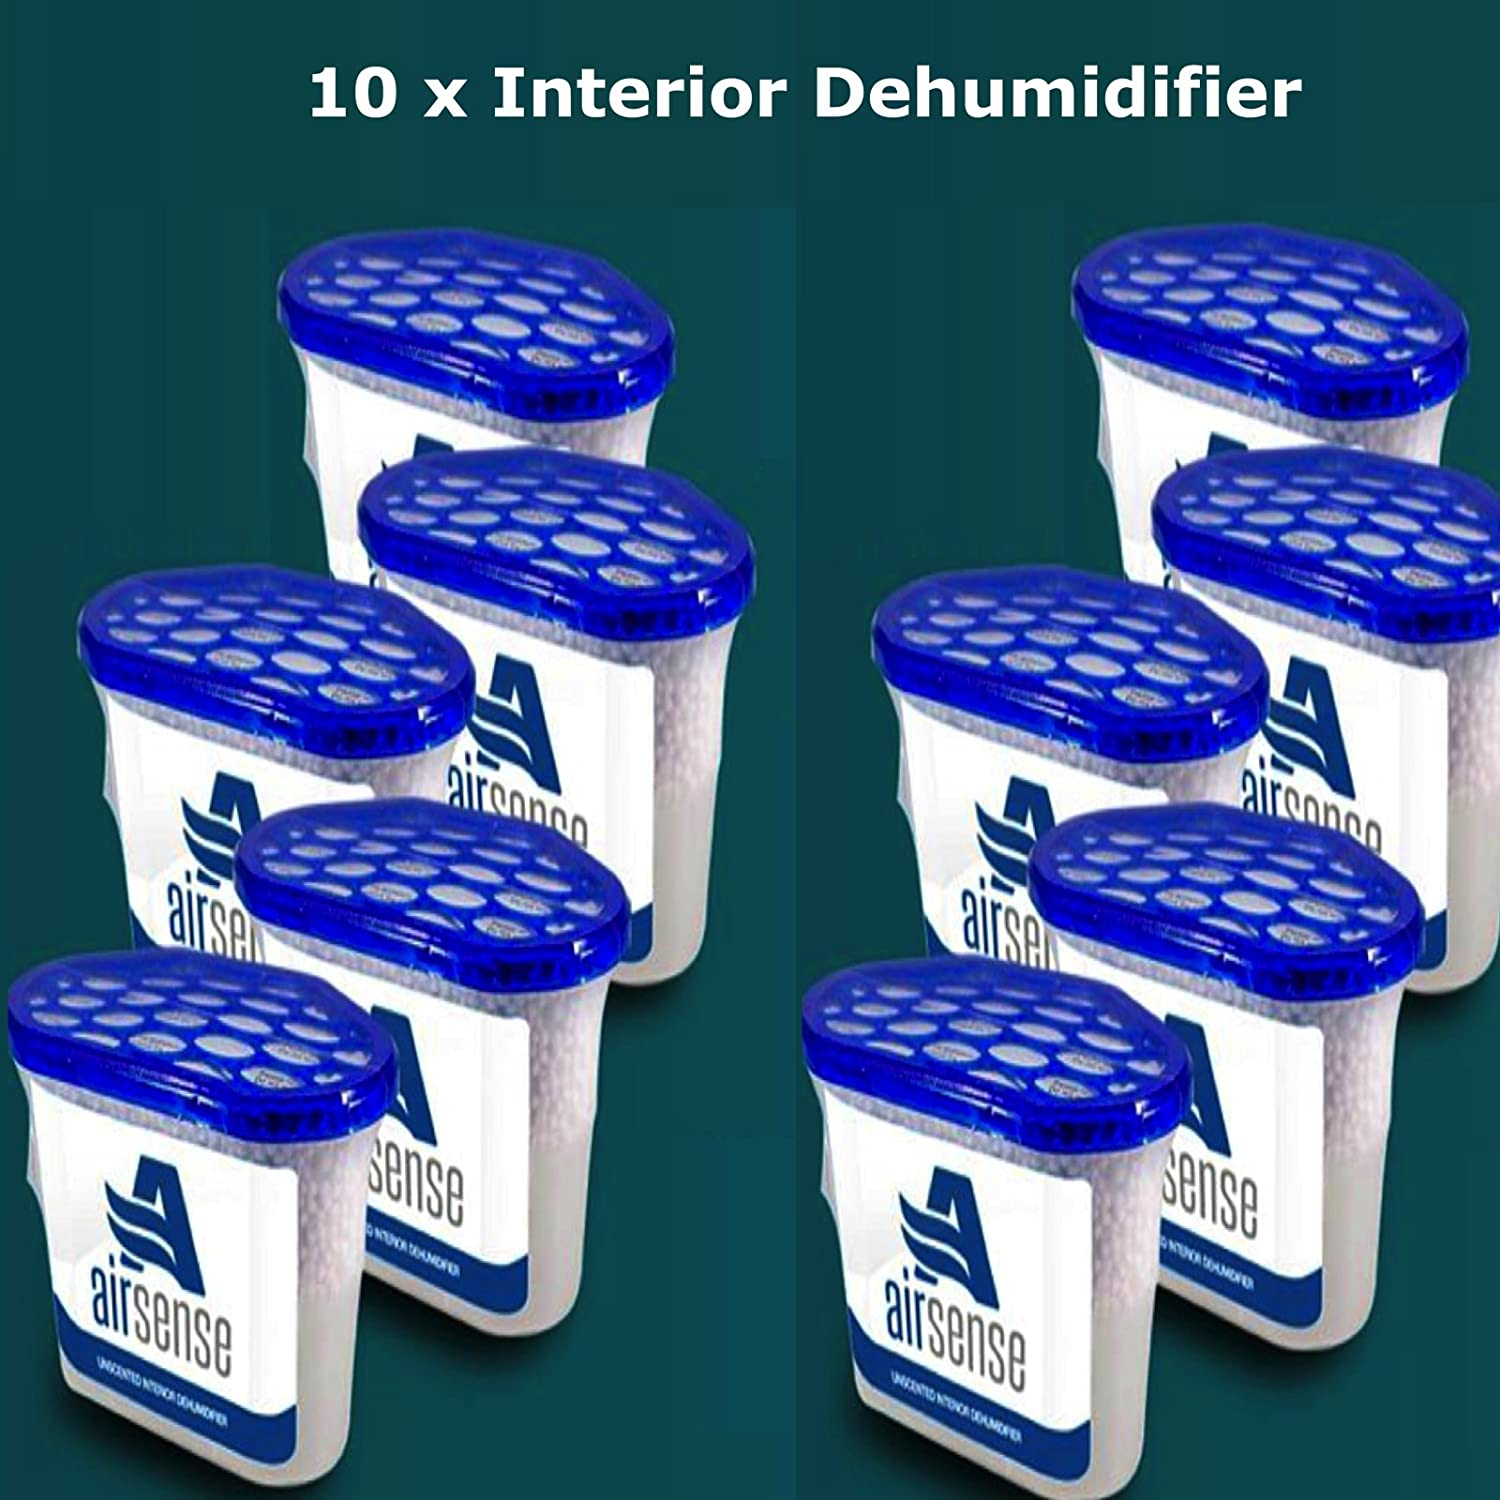 Airsense Interior Dehumidifier, 500 ml, Pack of 10 Dehumidifiers, Moisture Absorber, Damp, Mould Mildew, Condensation